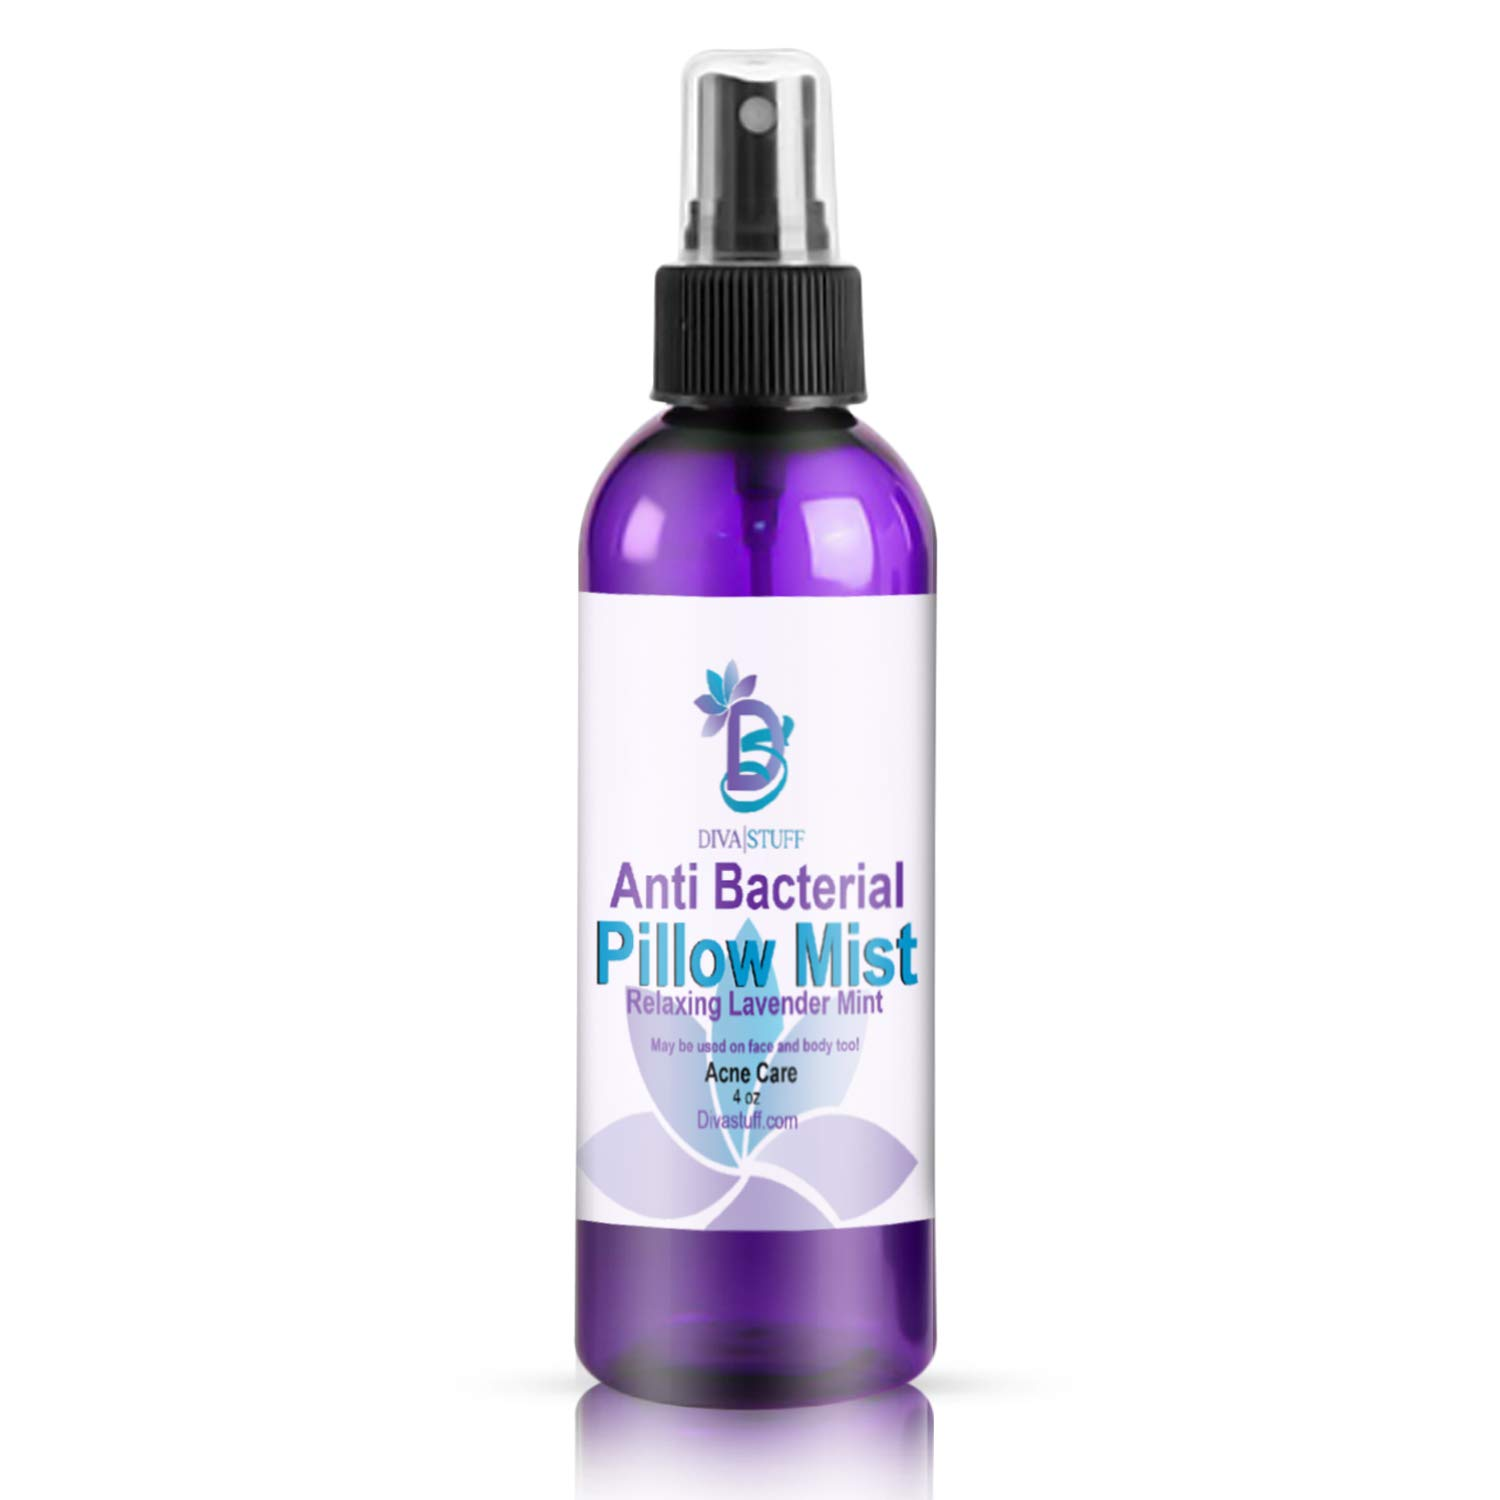 Diva Stuff Anti-Bacterial Pillow Mist, Promotes Clear Skin & Kills Acne-Causing Bacteria, Cleans Pillows, Pillowcases, Beddings, Sheets, Made in USA, Safe Ingredients, 4 fl oz by Diva Stuff